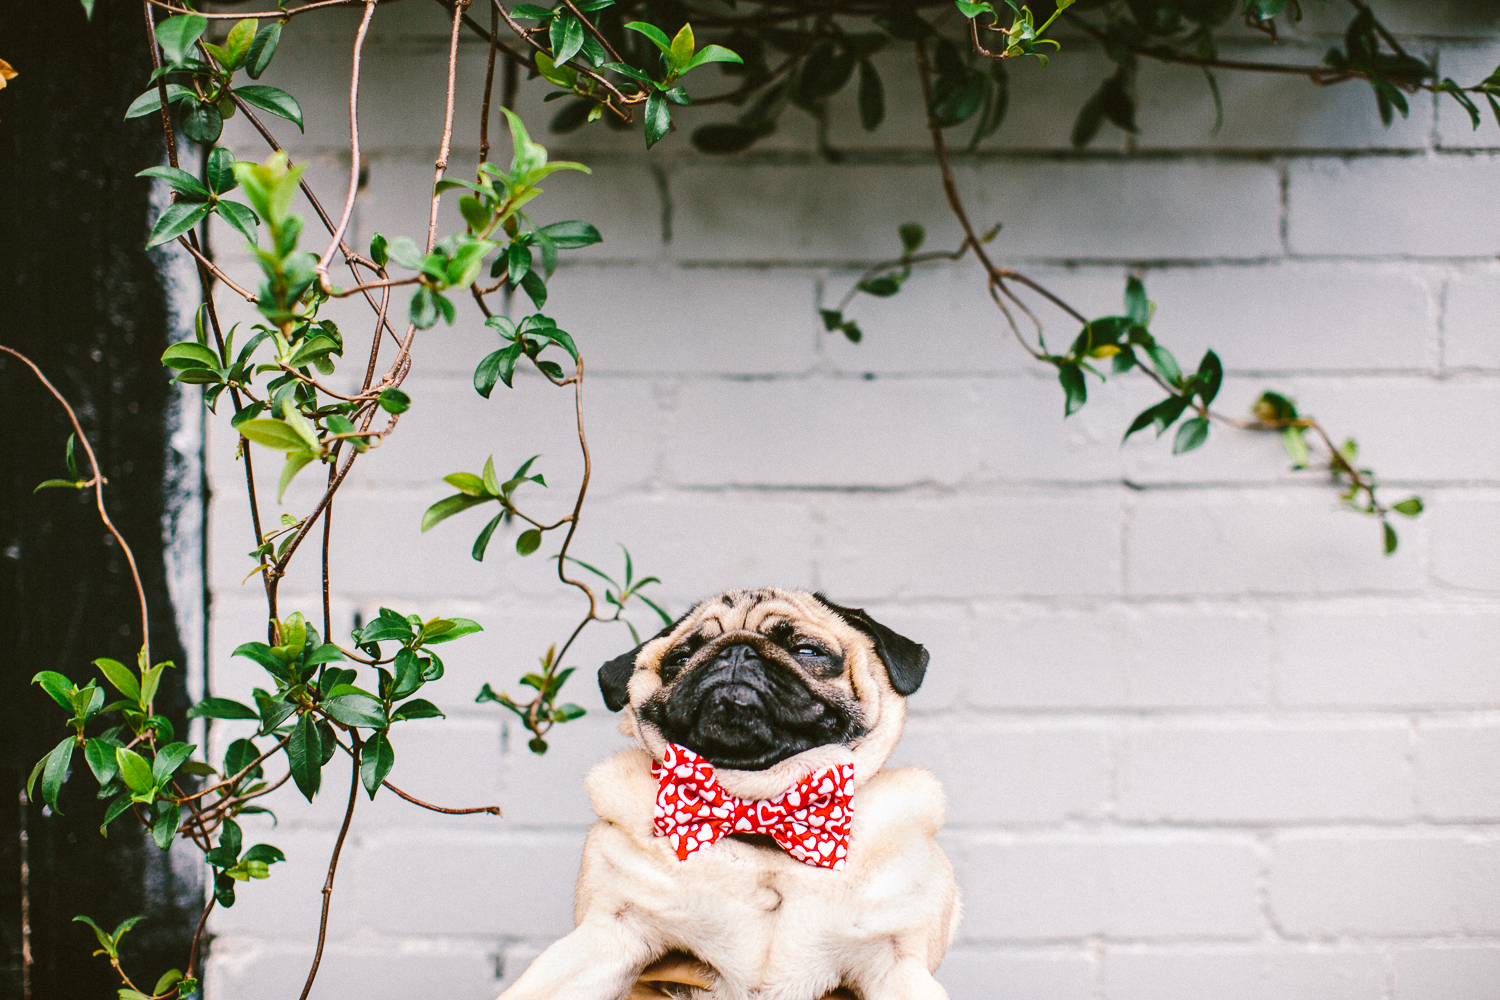 45_twoguineapigs_pet_photography_ohjaffa_vday_bowtie_collection_2015_BTS_1500.jpg